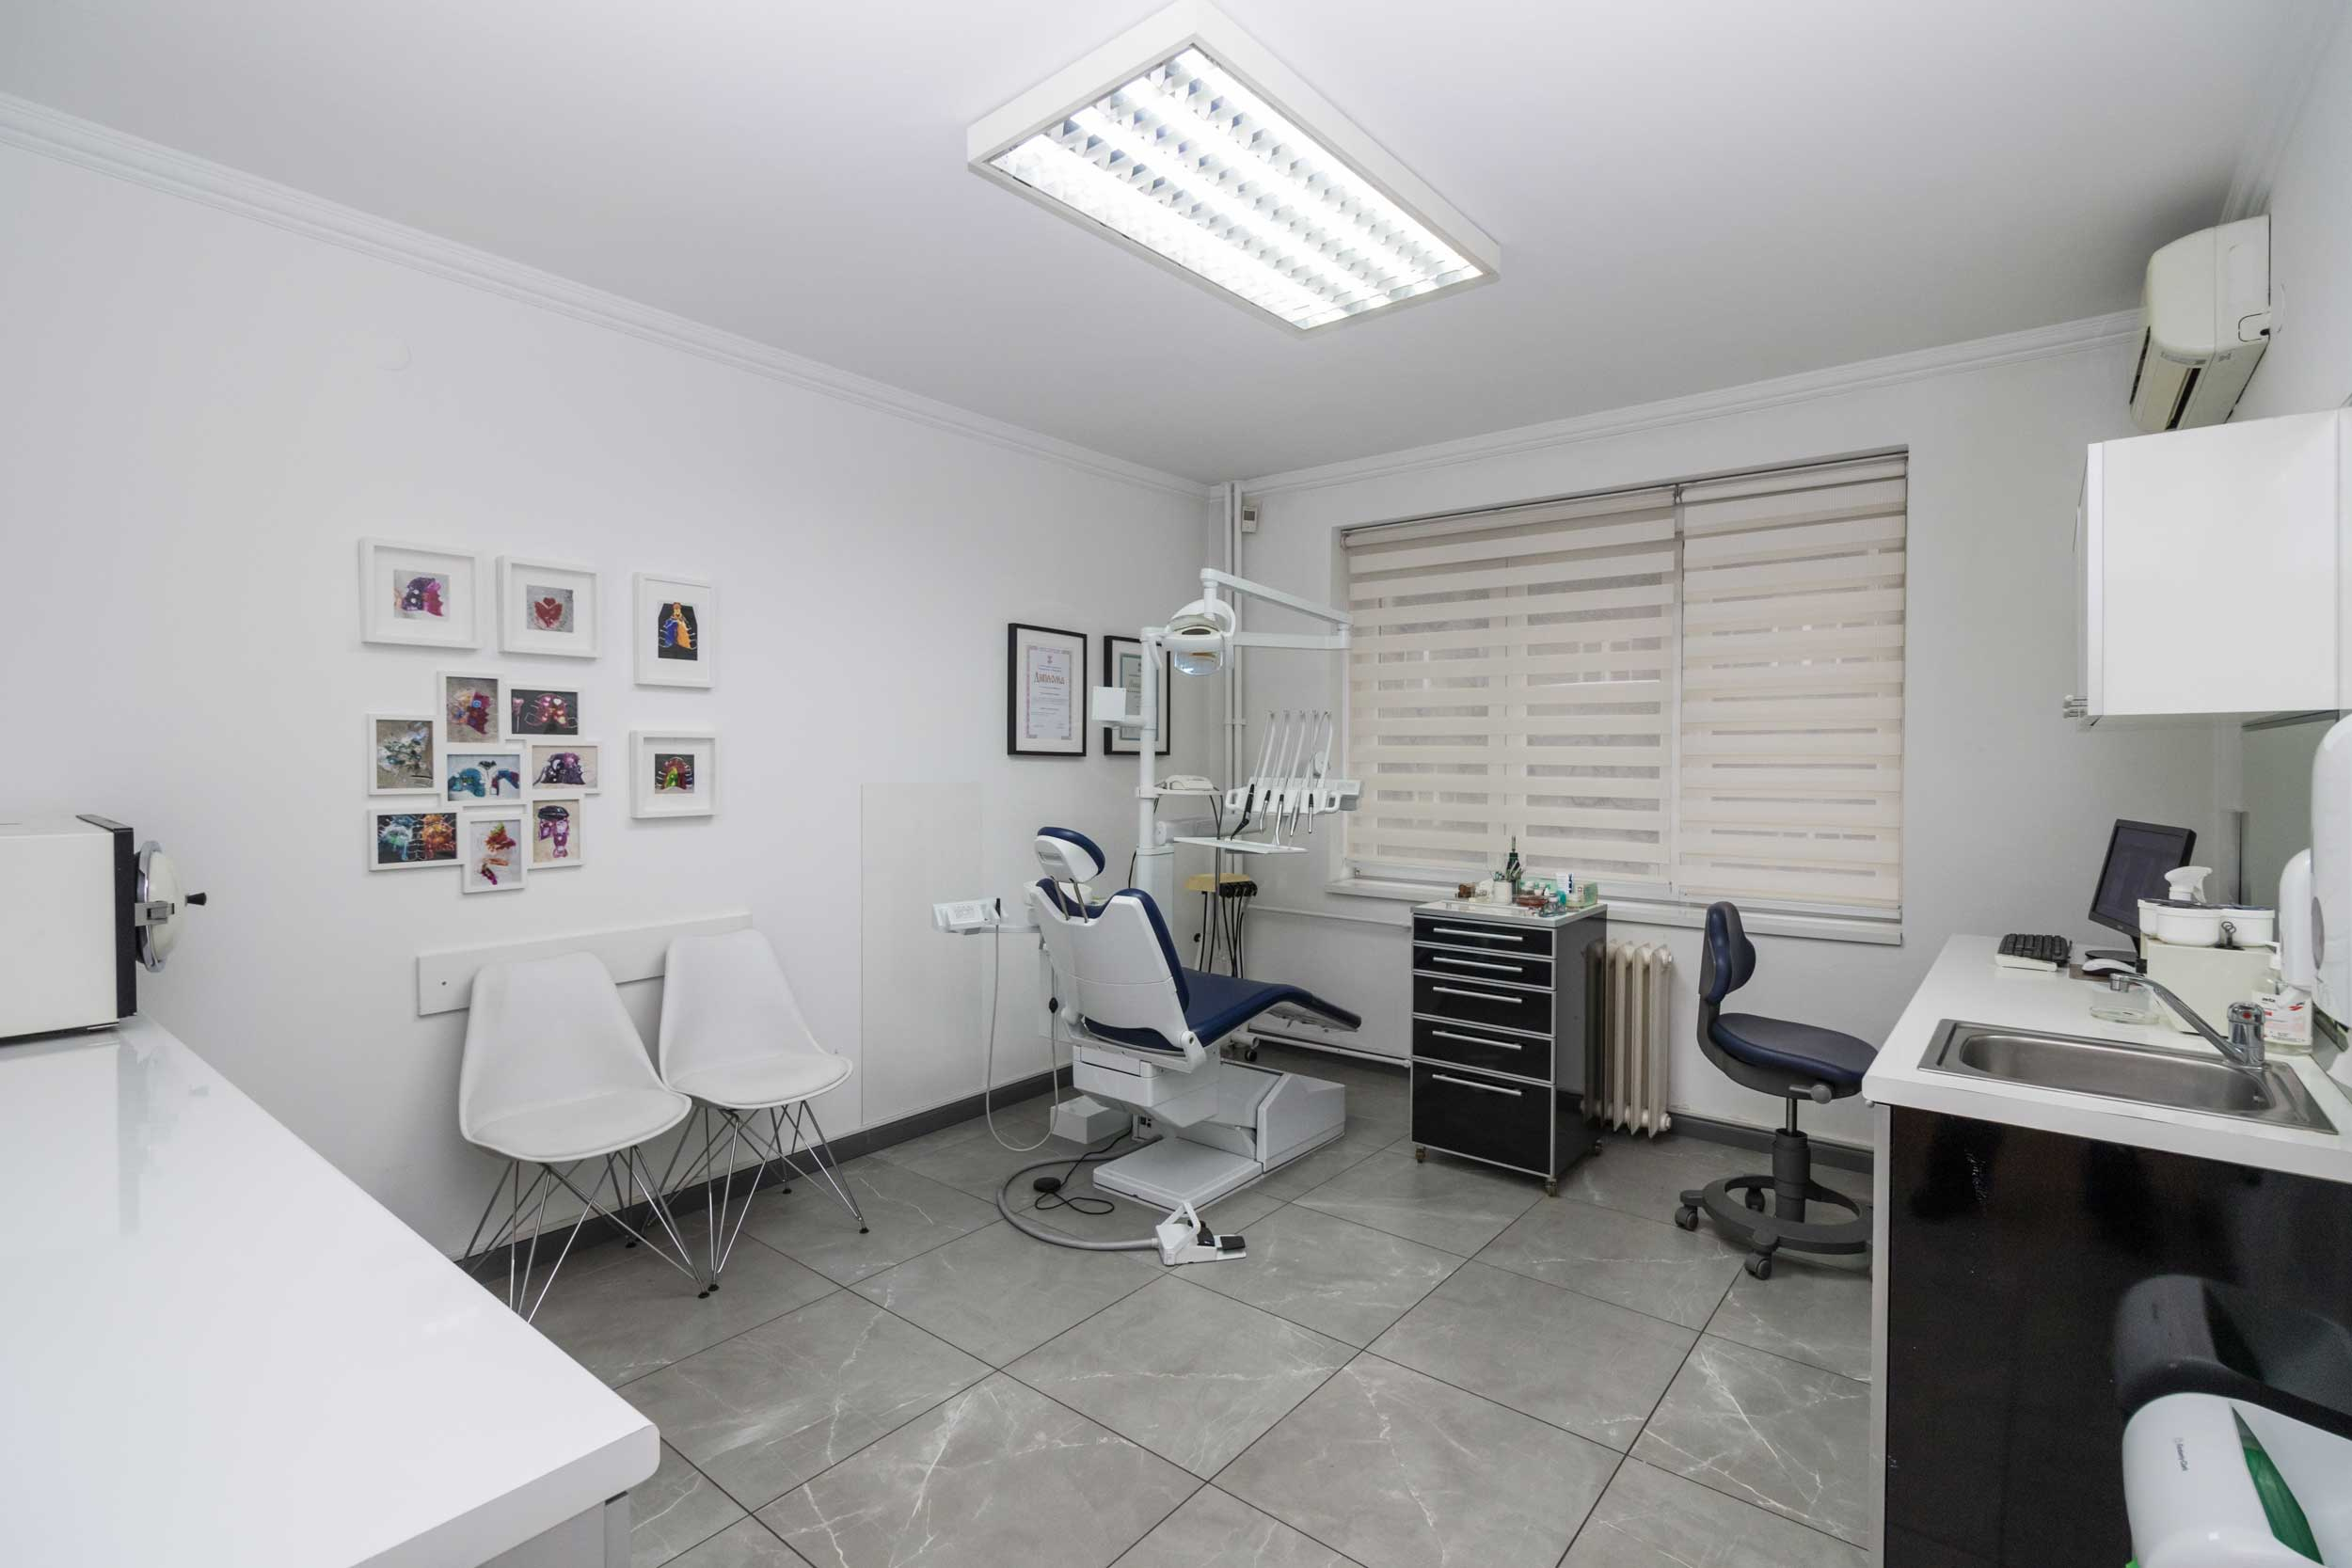 stomatoloska-ordinacija-vunjak-dental-clinic-ordinacija-13